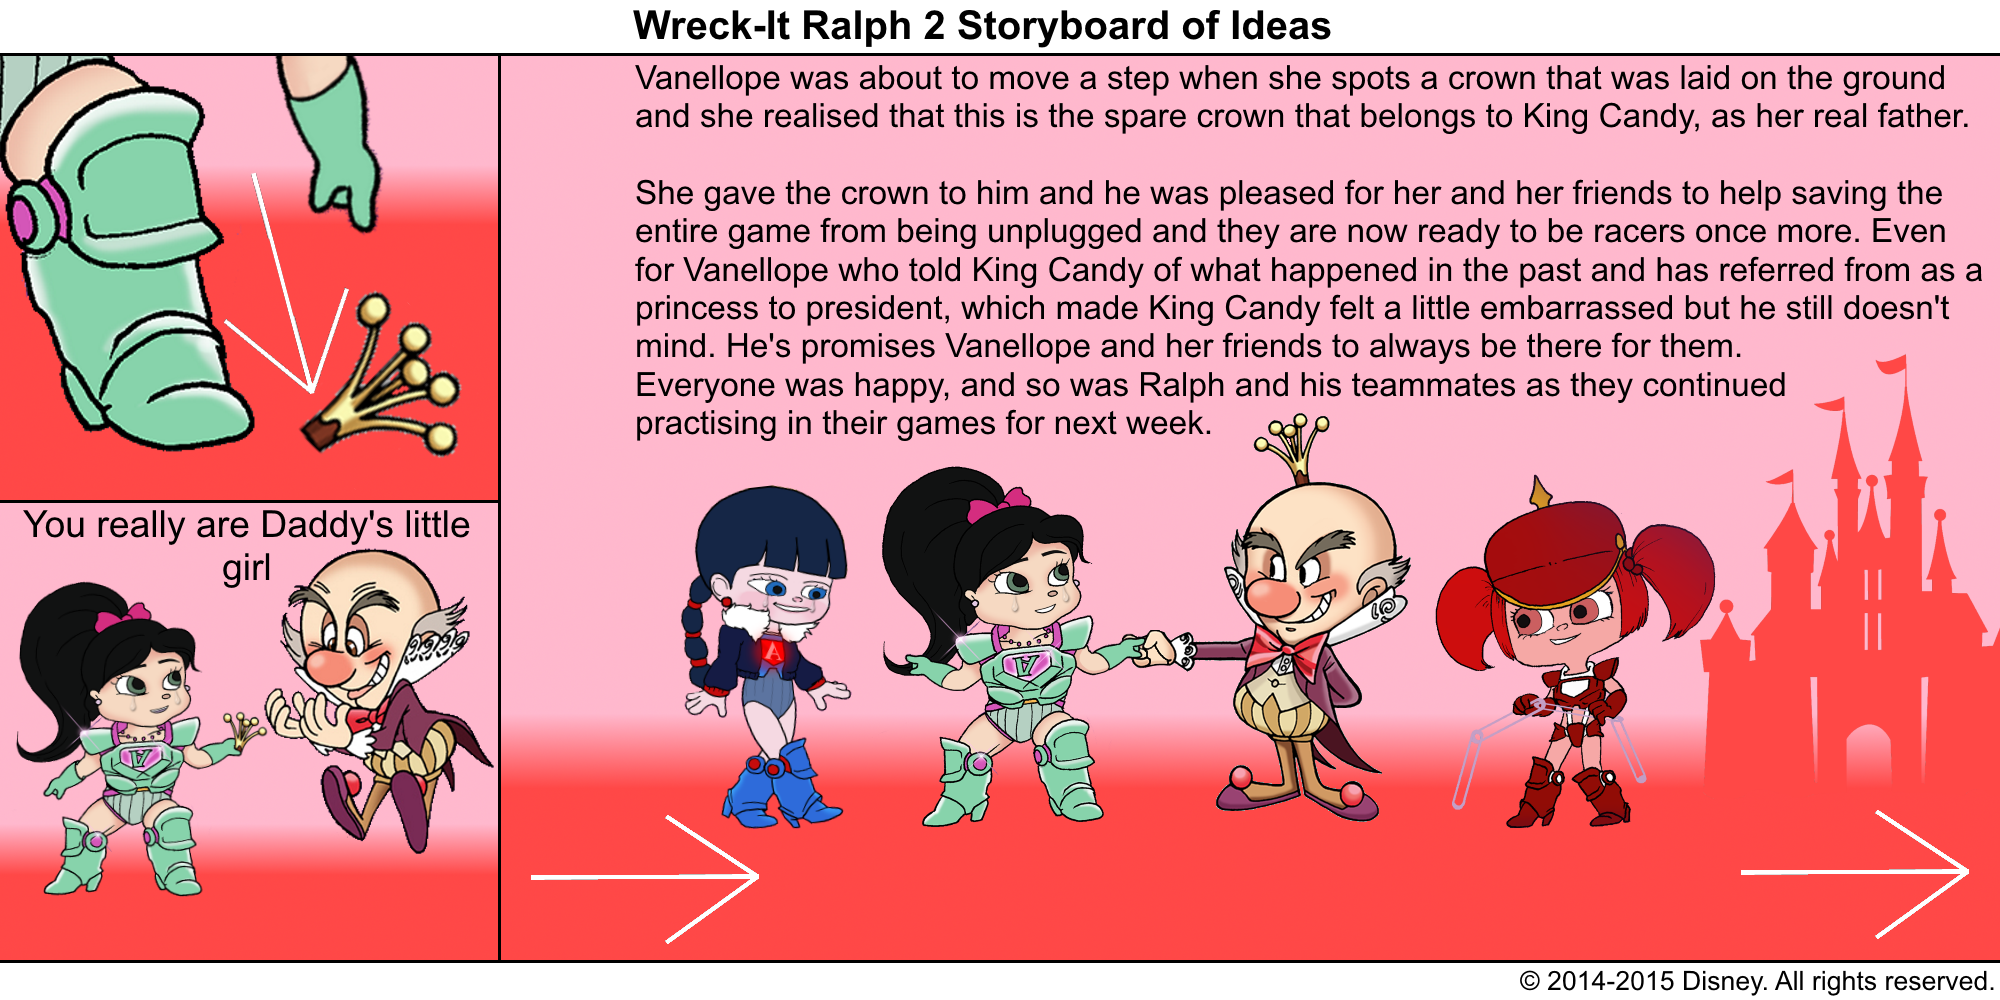 Best Lines From Wreck It Ralph 2: Wreck-It Ralph 2 Storyboard Of Ideas 49.png